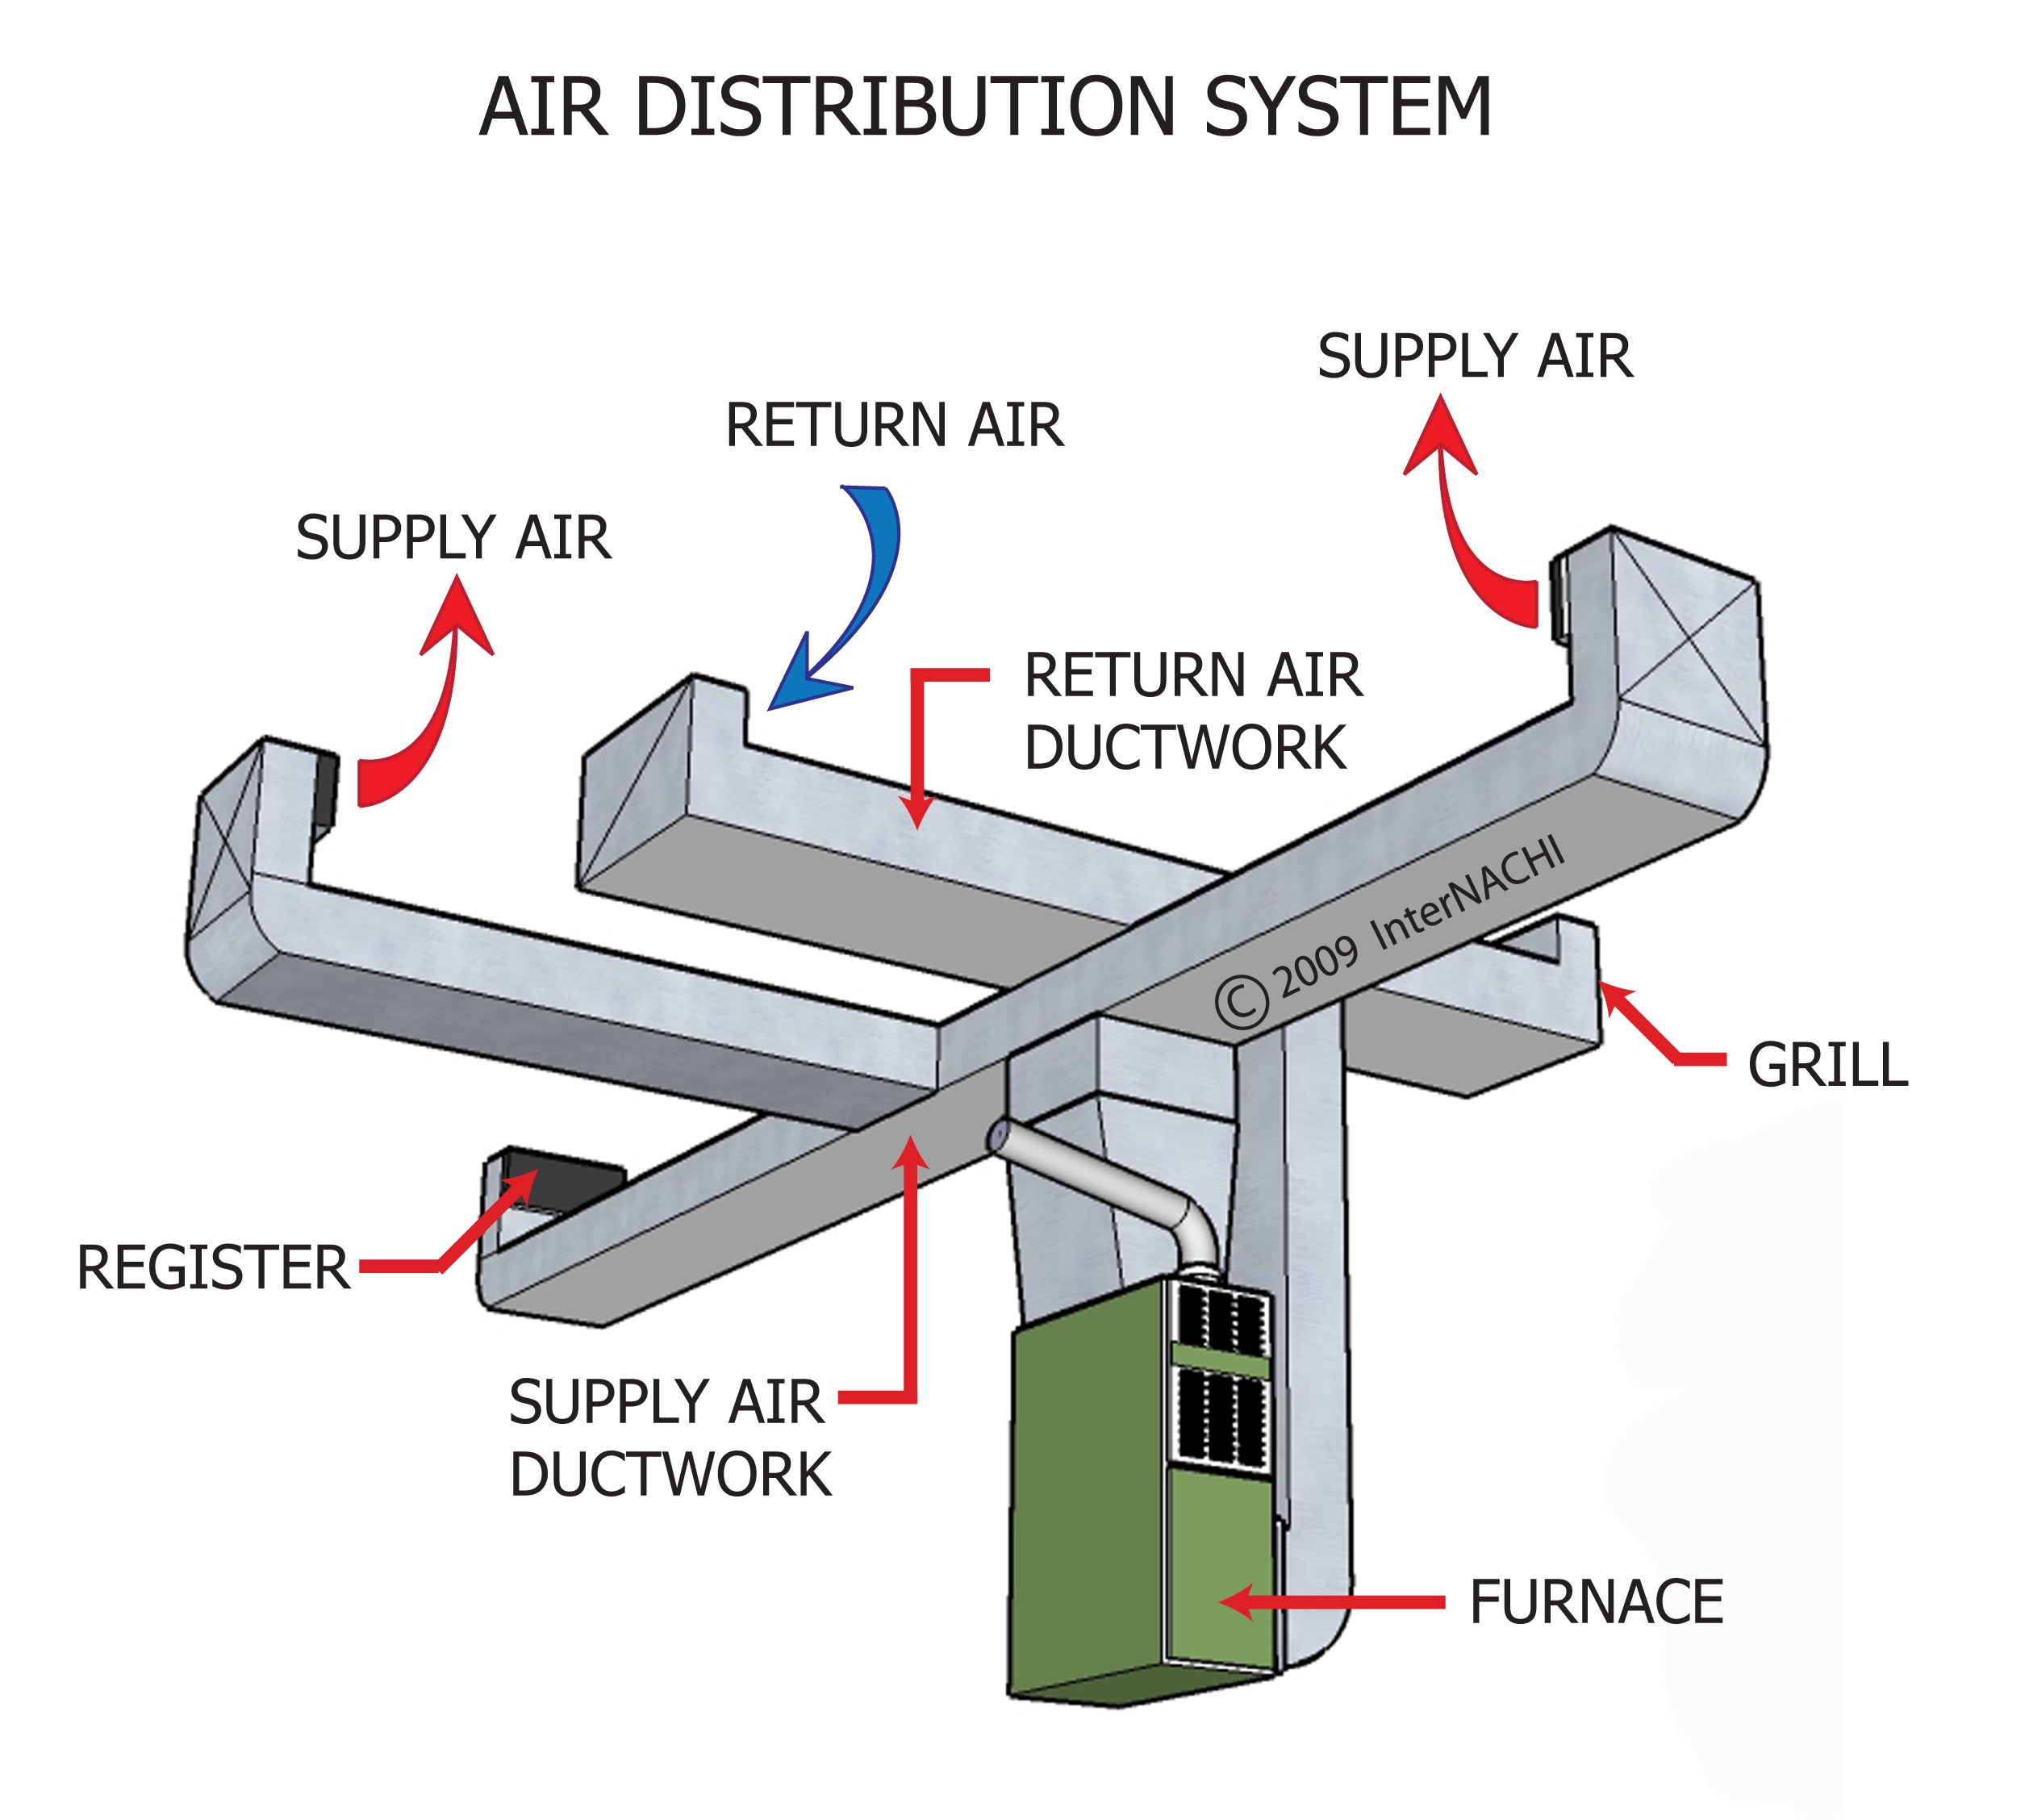 #B8131A How To Inspect HVAC Systems Course Page 372 InterNACHI  Most Effective 4105 How Much To Install Hvac System pictures with 2515x2256 px on helpvideos.info - Air Conditioners, Air Coolers and more